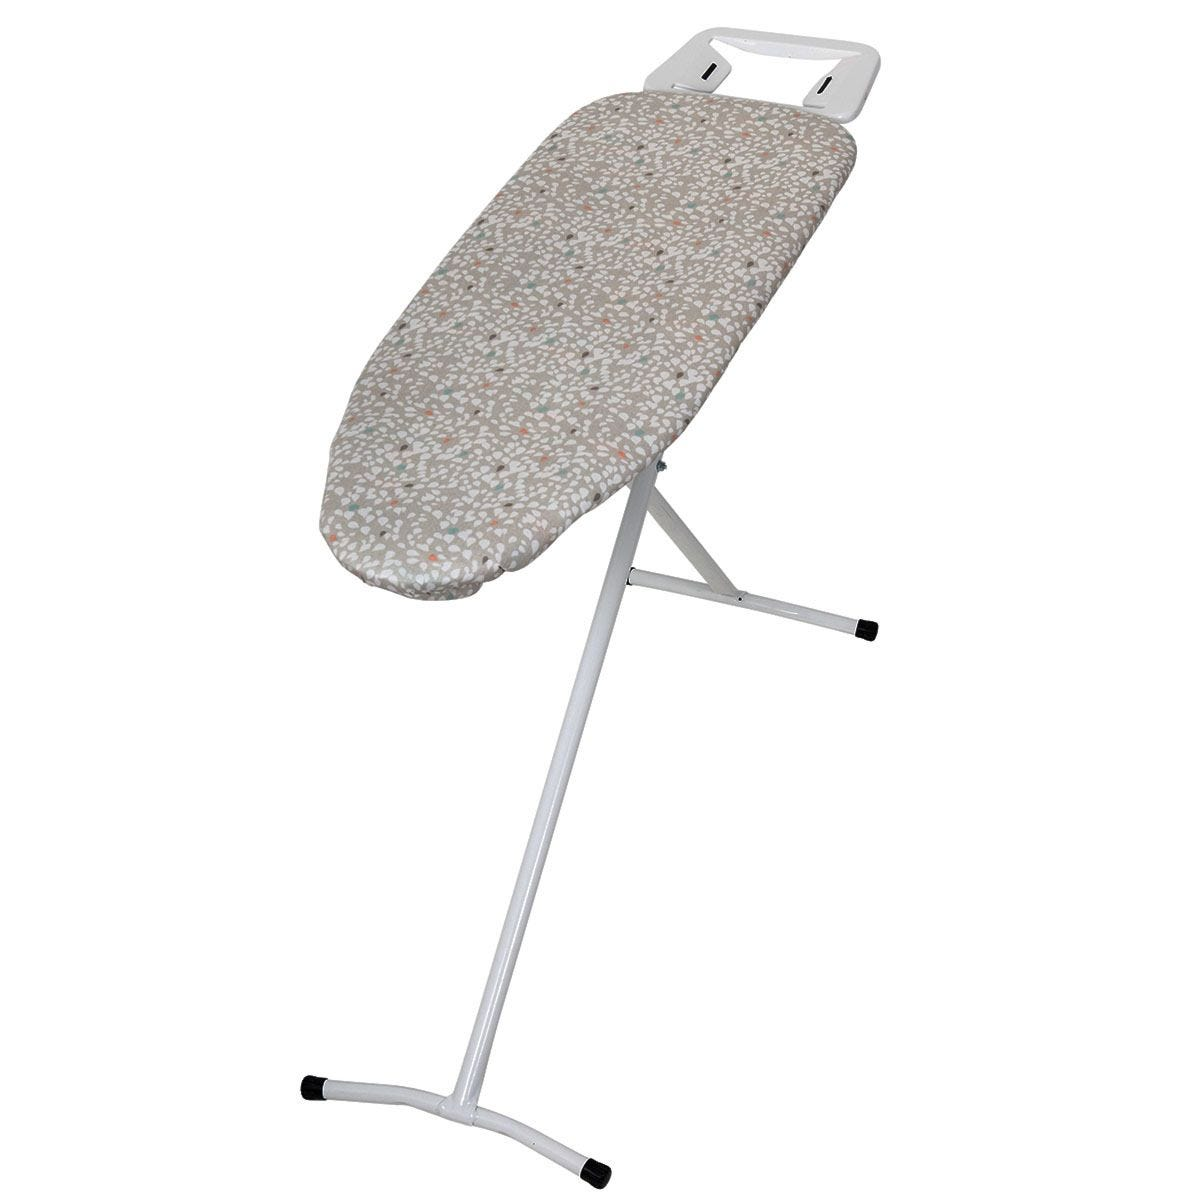 Addis PerfectFit Medium Replacement Ironing Board Cover